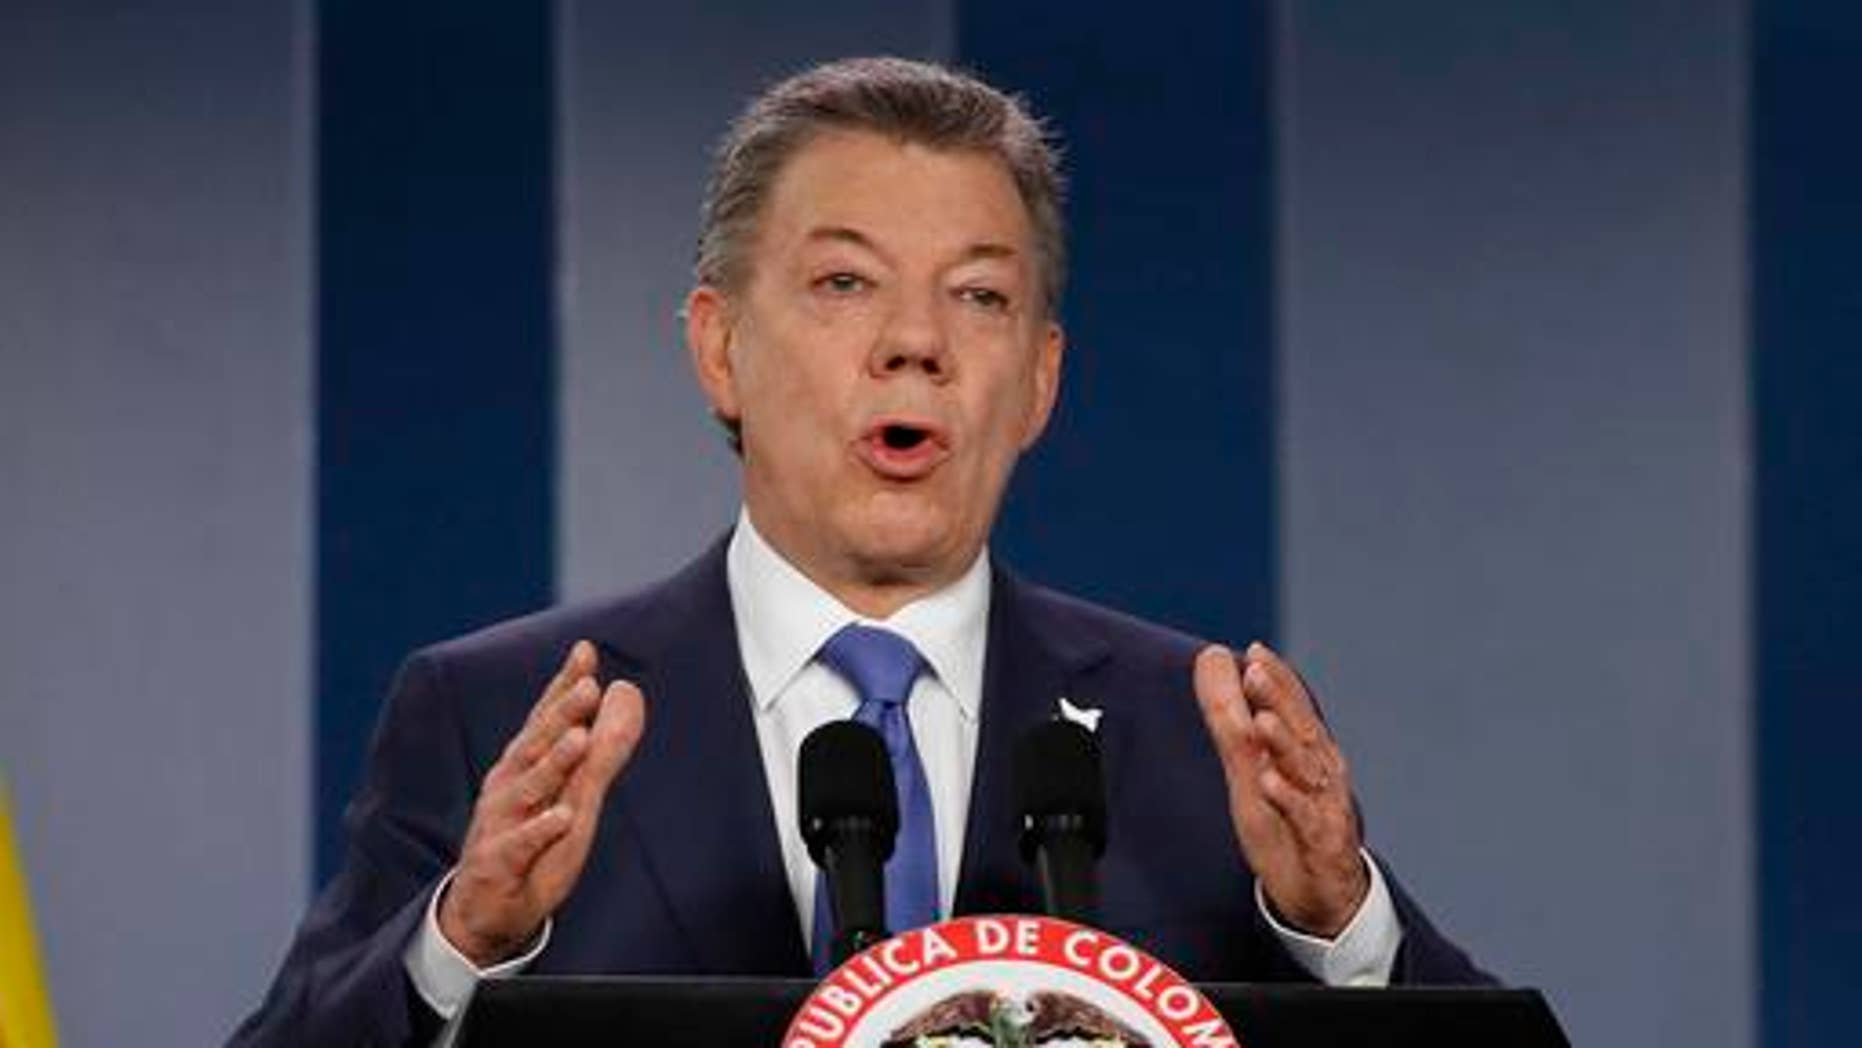 FILE - In this Wednesday, Oct. 4, 2016 file photo Colombiaâs President Juan Manuel Santos delivers a statement to the press after meeting with former President Alvaro Uribe and other opposition leaders at the presidential palace in Bogota, Colombia. Colombian President Juan Manuel Santos has won Nobel Peace Prize it was announced on Friday Oct. 7, 2016.  (AP Photo/Fernando Vergara, File)